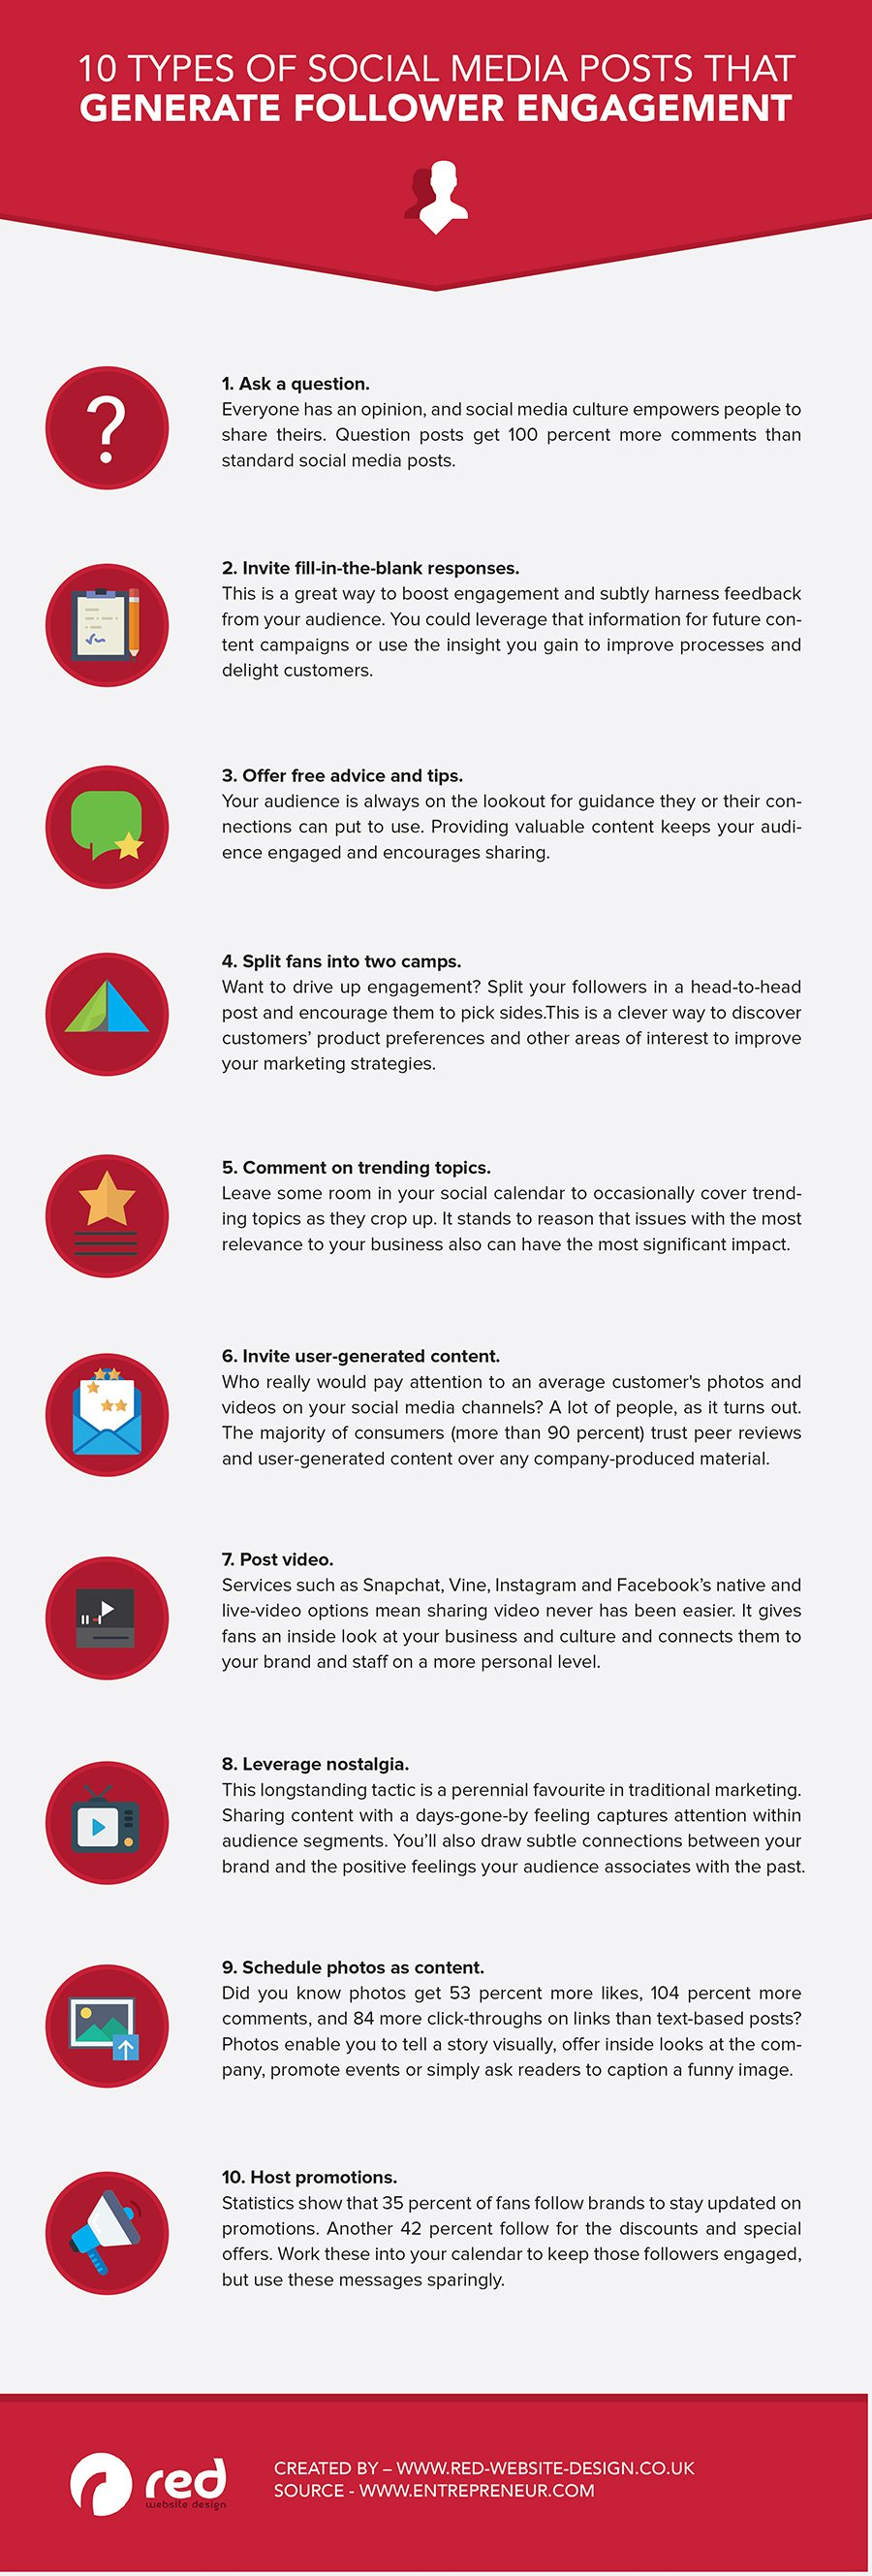 10-types-of-social-media-posts-that-generate-engagement-with-followers1-1